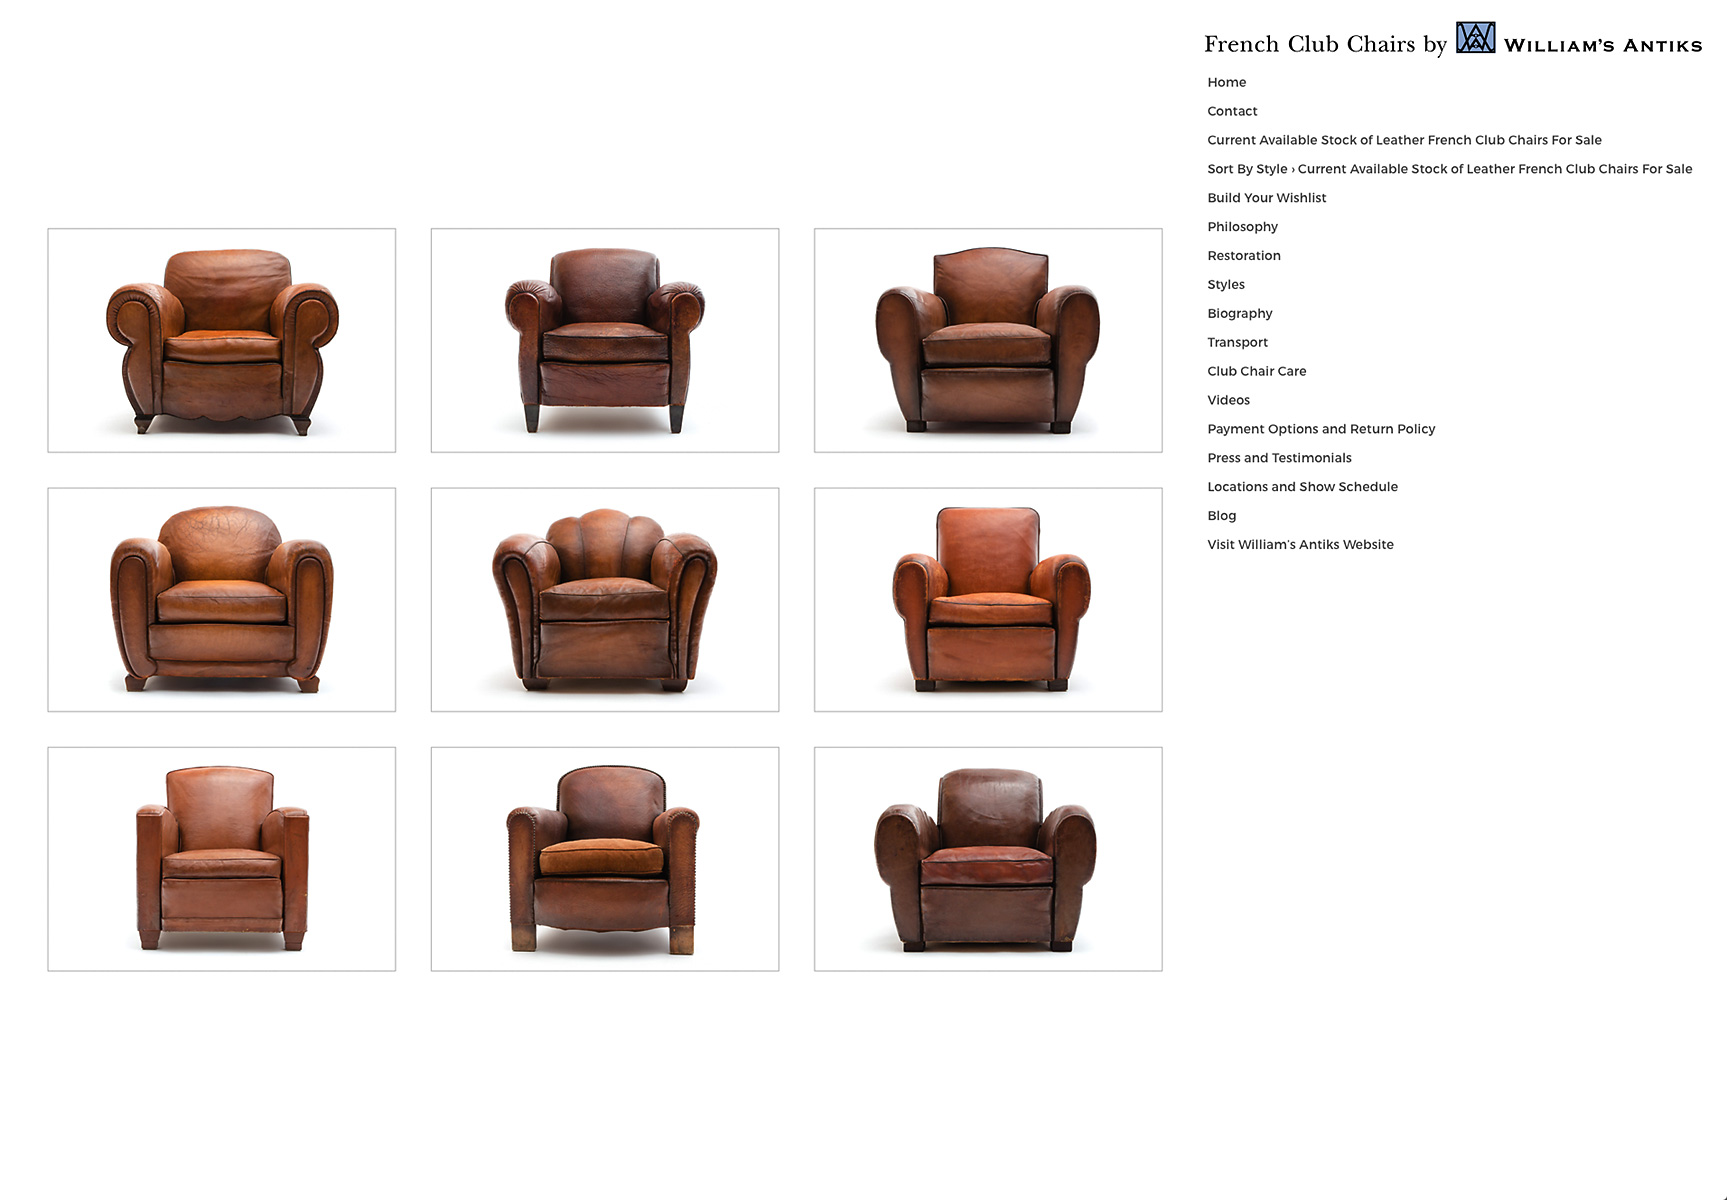 french_club_chairs_website-03